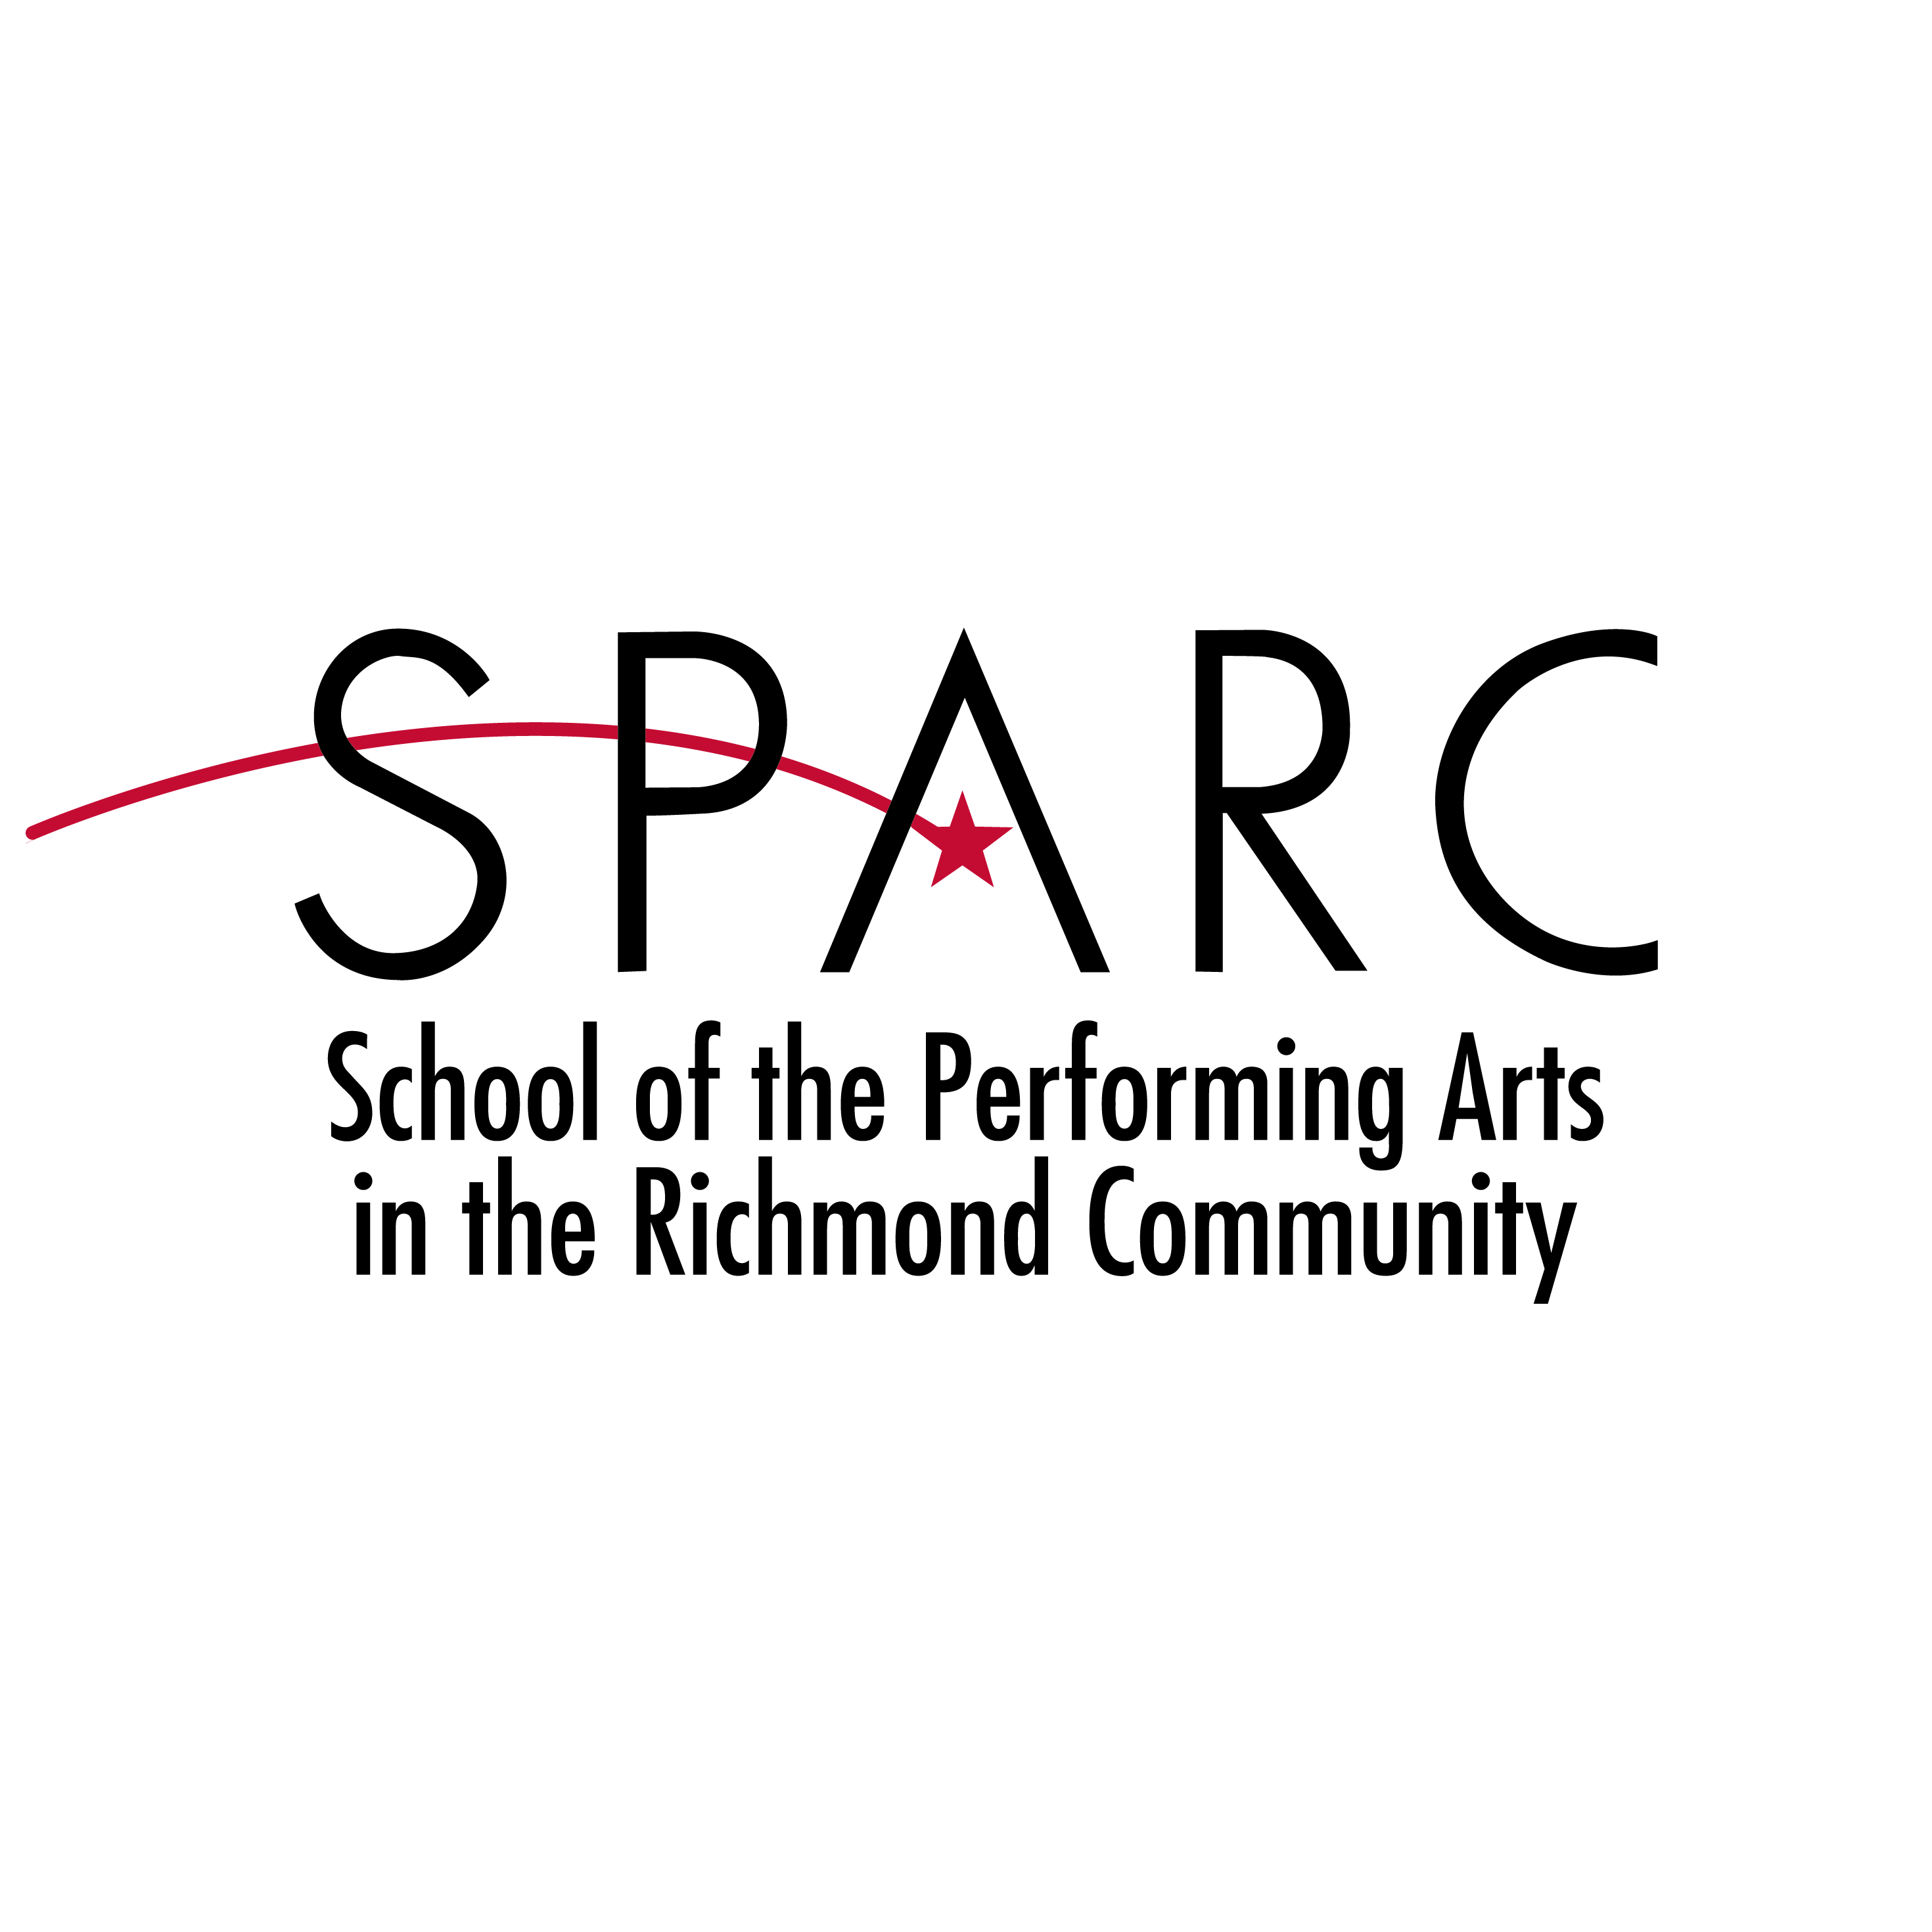 SPARC - School of the Performing Arts in the Richmond Community